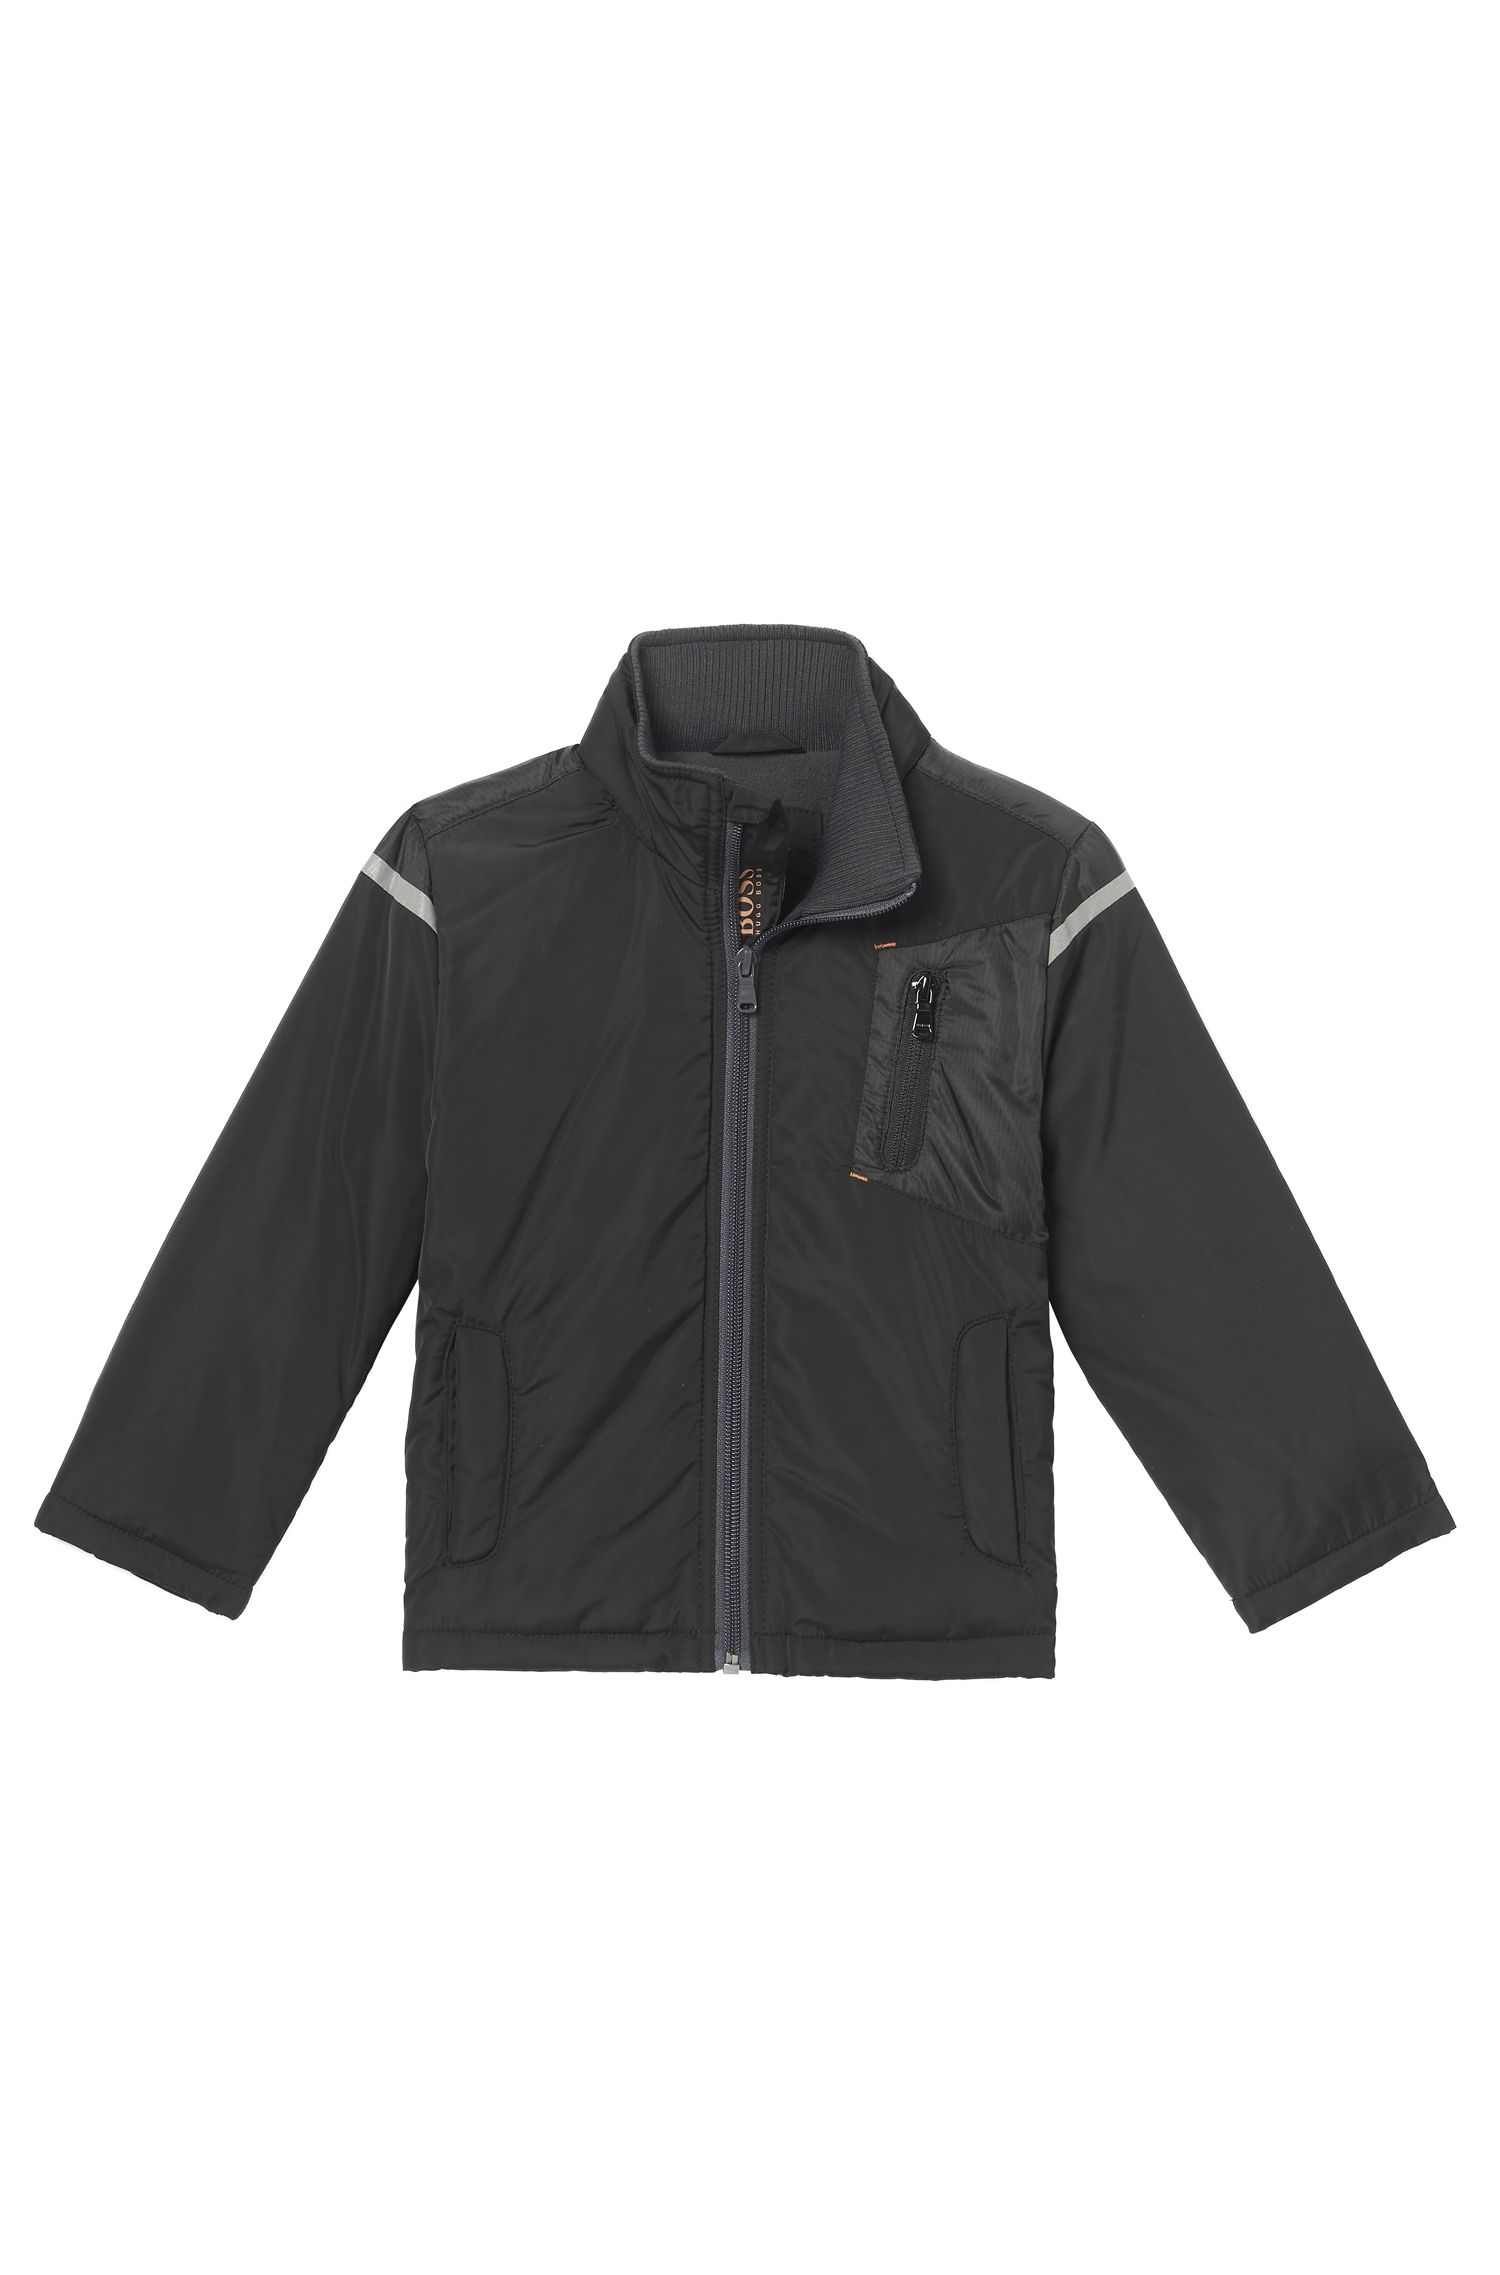 'J26291' | Boys Nylon Jacket